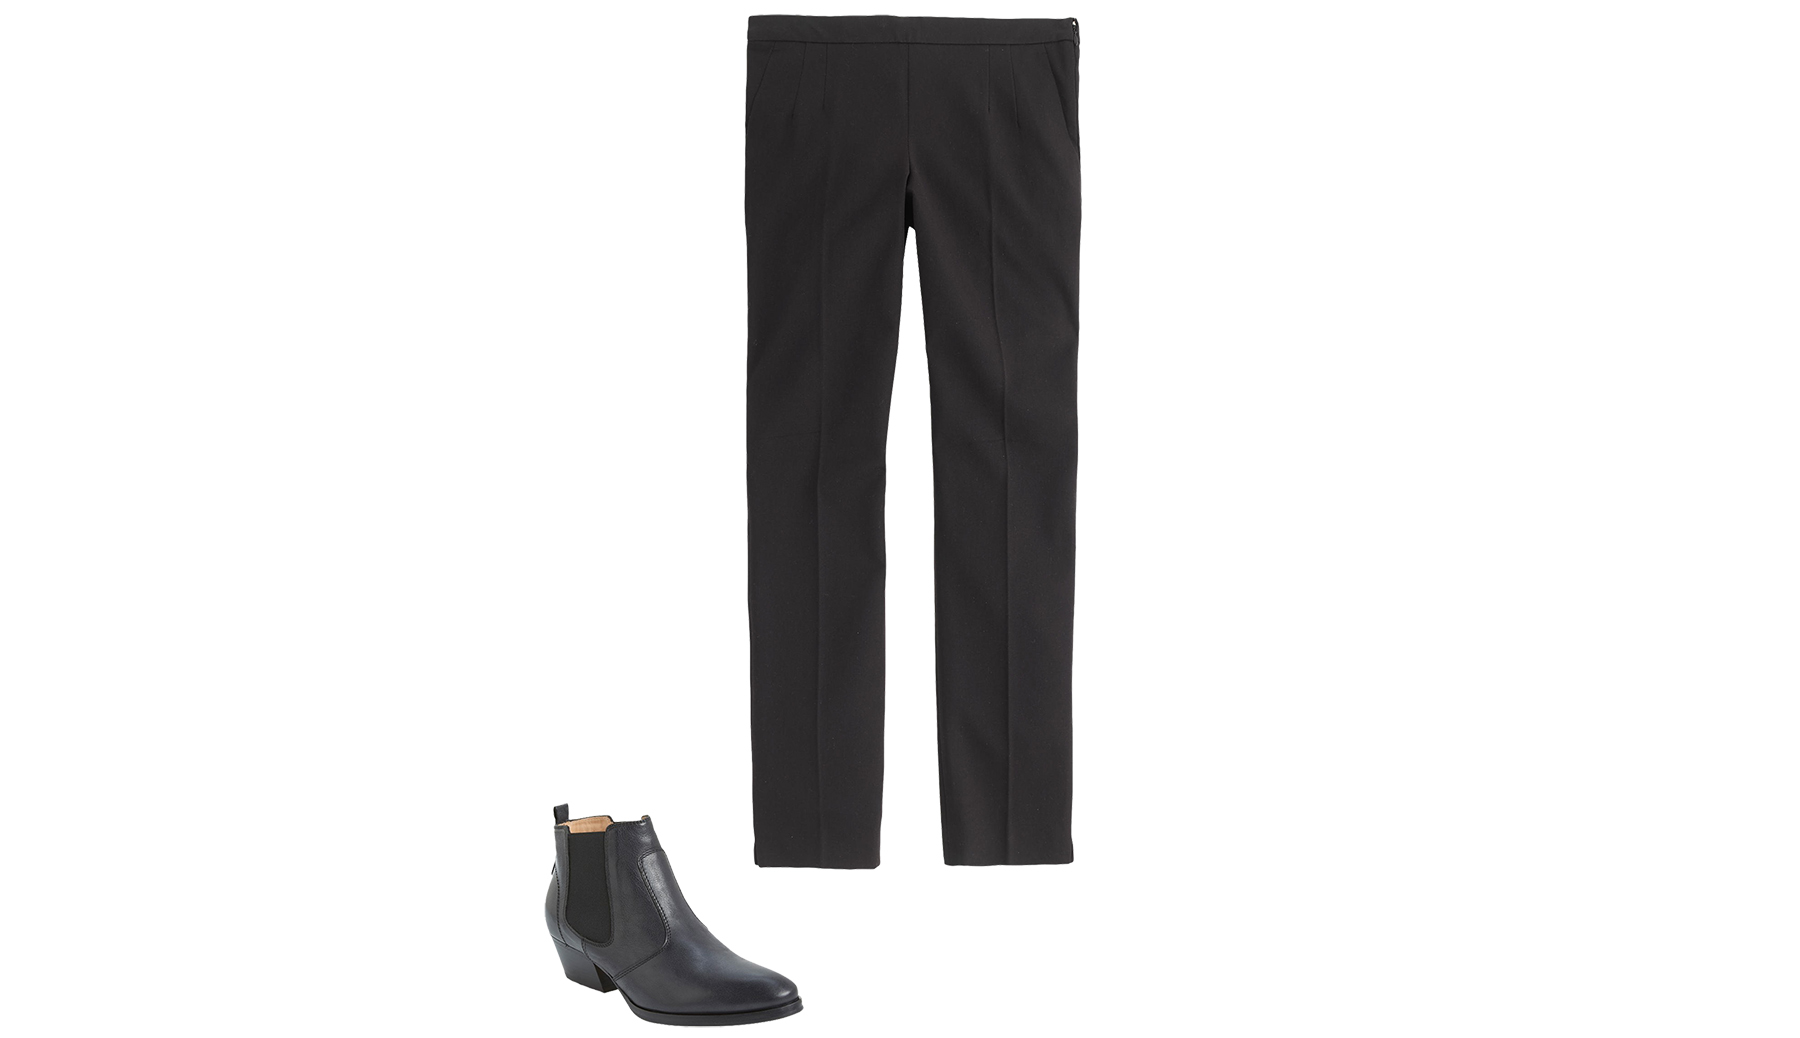 Black ankle length pants and black ankle boots